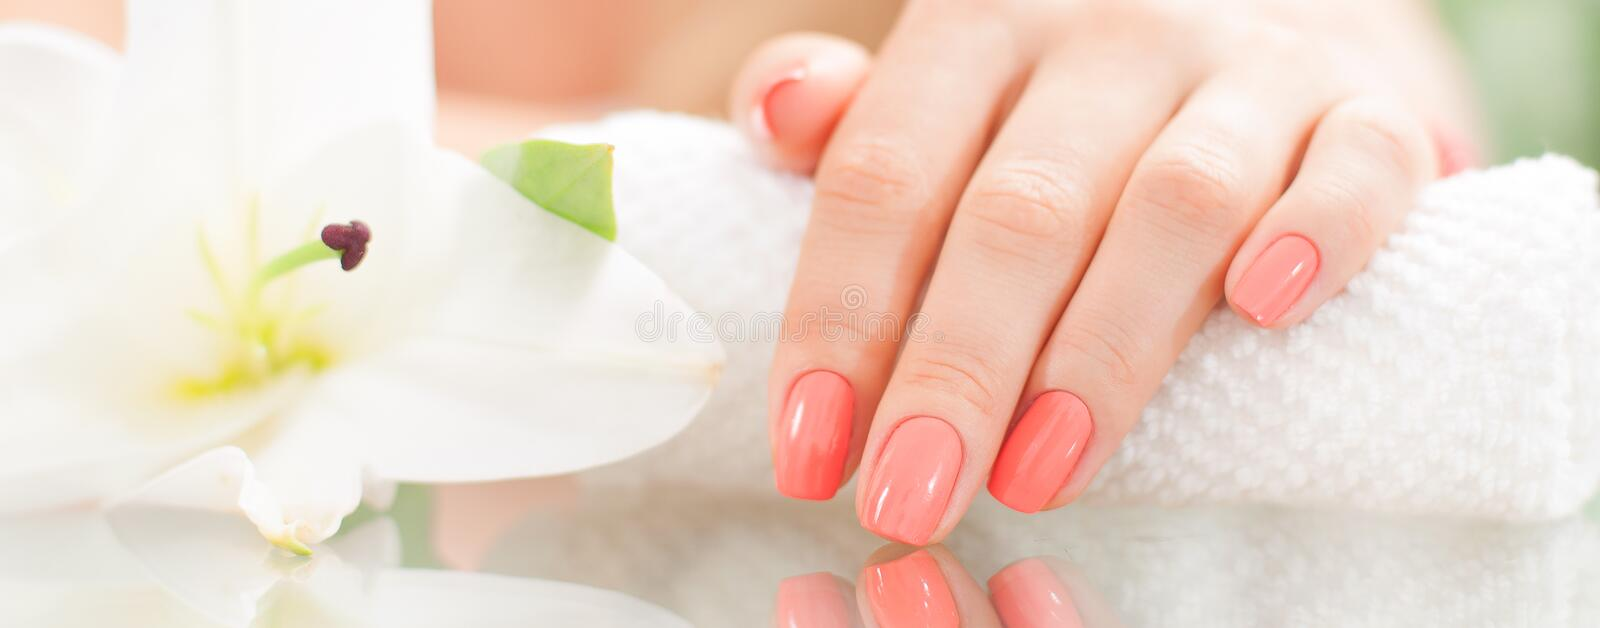 Manicure concept. Beautiful woman& x27;s hand with perfect manicure at beauty salon. stock image